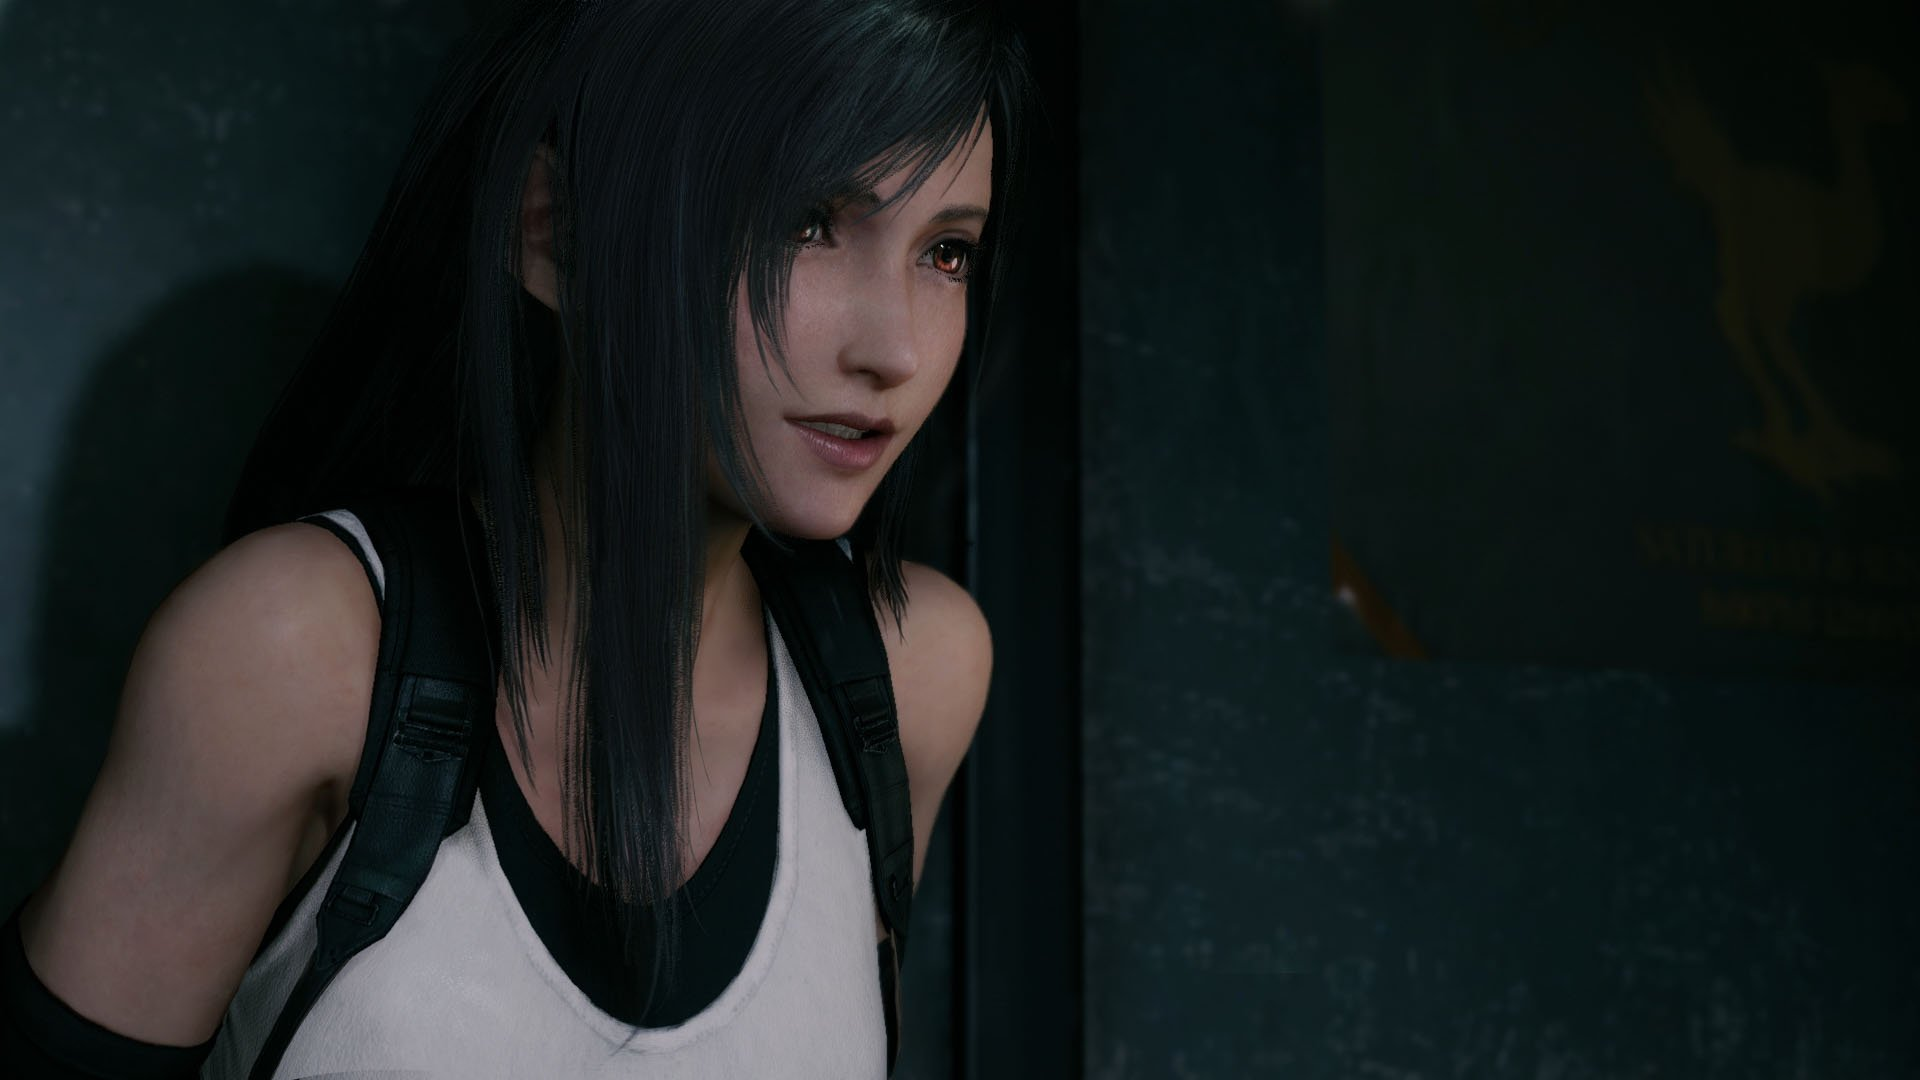 Final Fantasy Vii Remake Hd Wallpaper Background Image 1920x1080 Id 1042736 Wallpaper Abyss